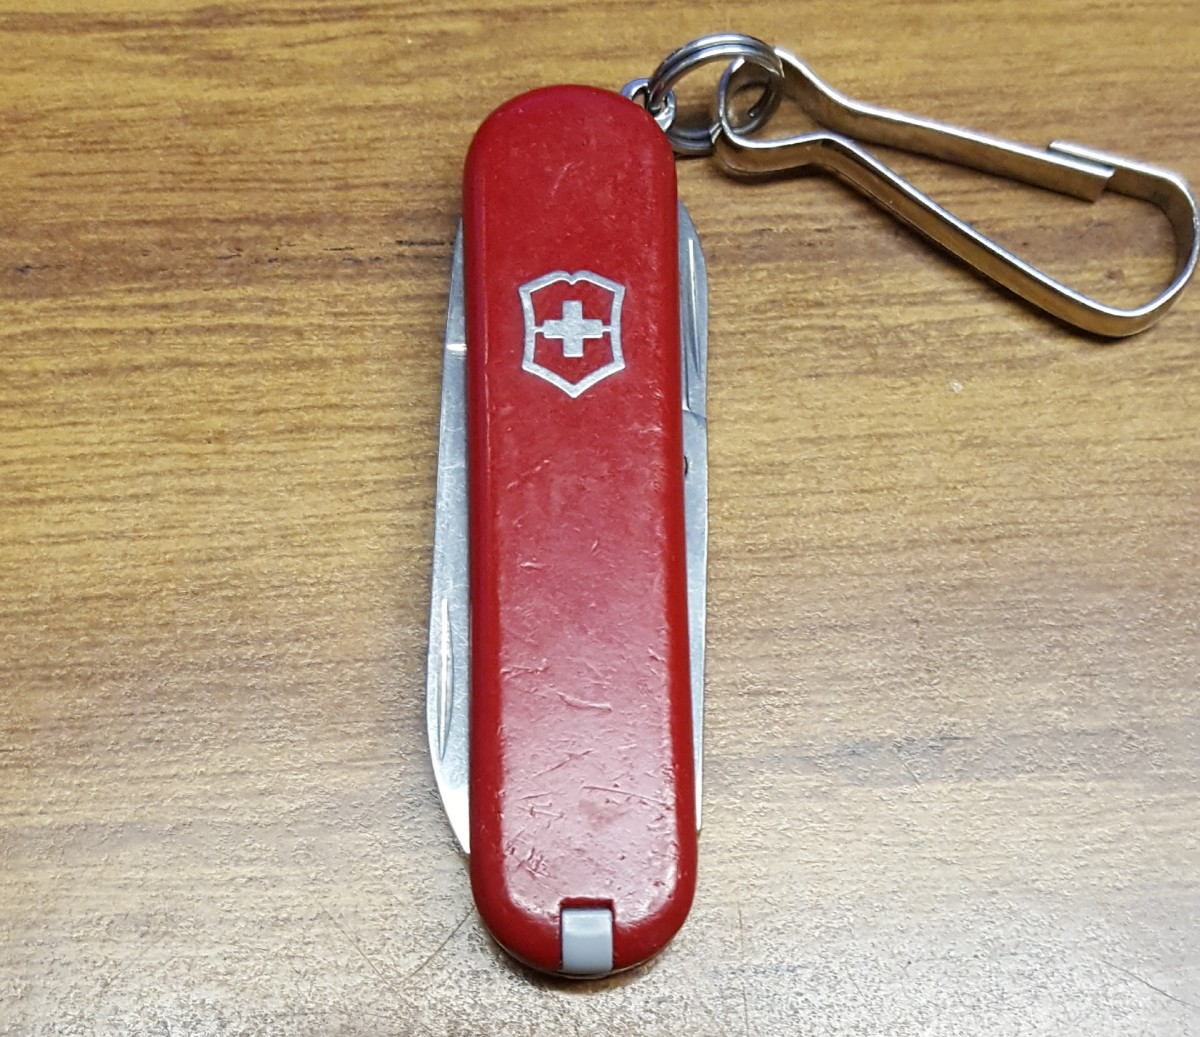 victorinox-classic-sd-keychain-knife-perfection